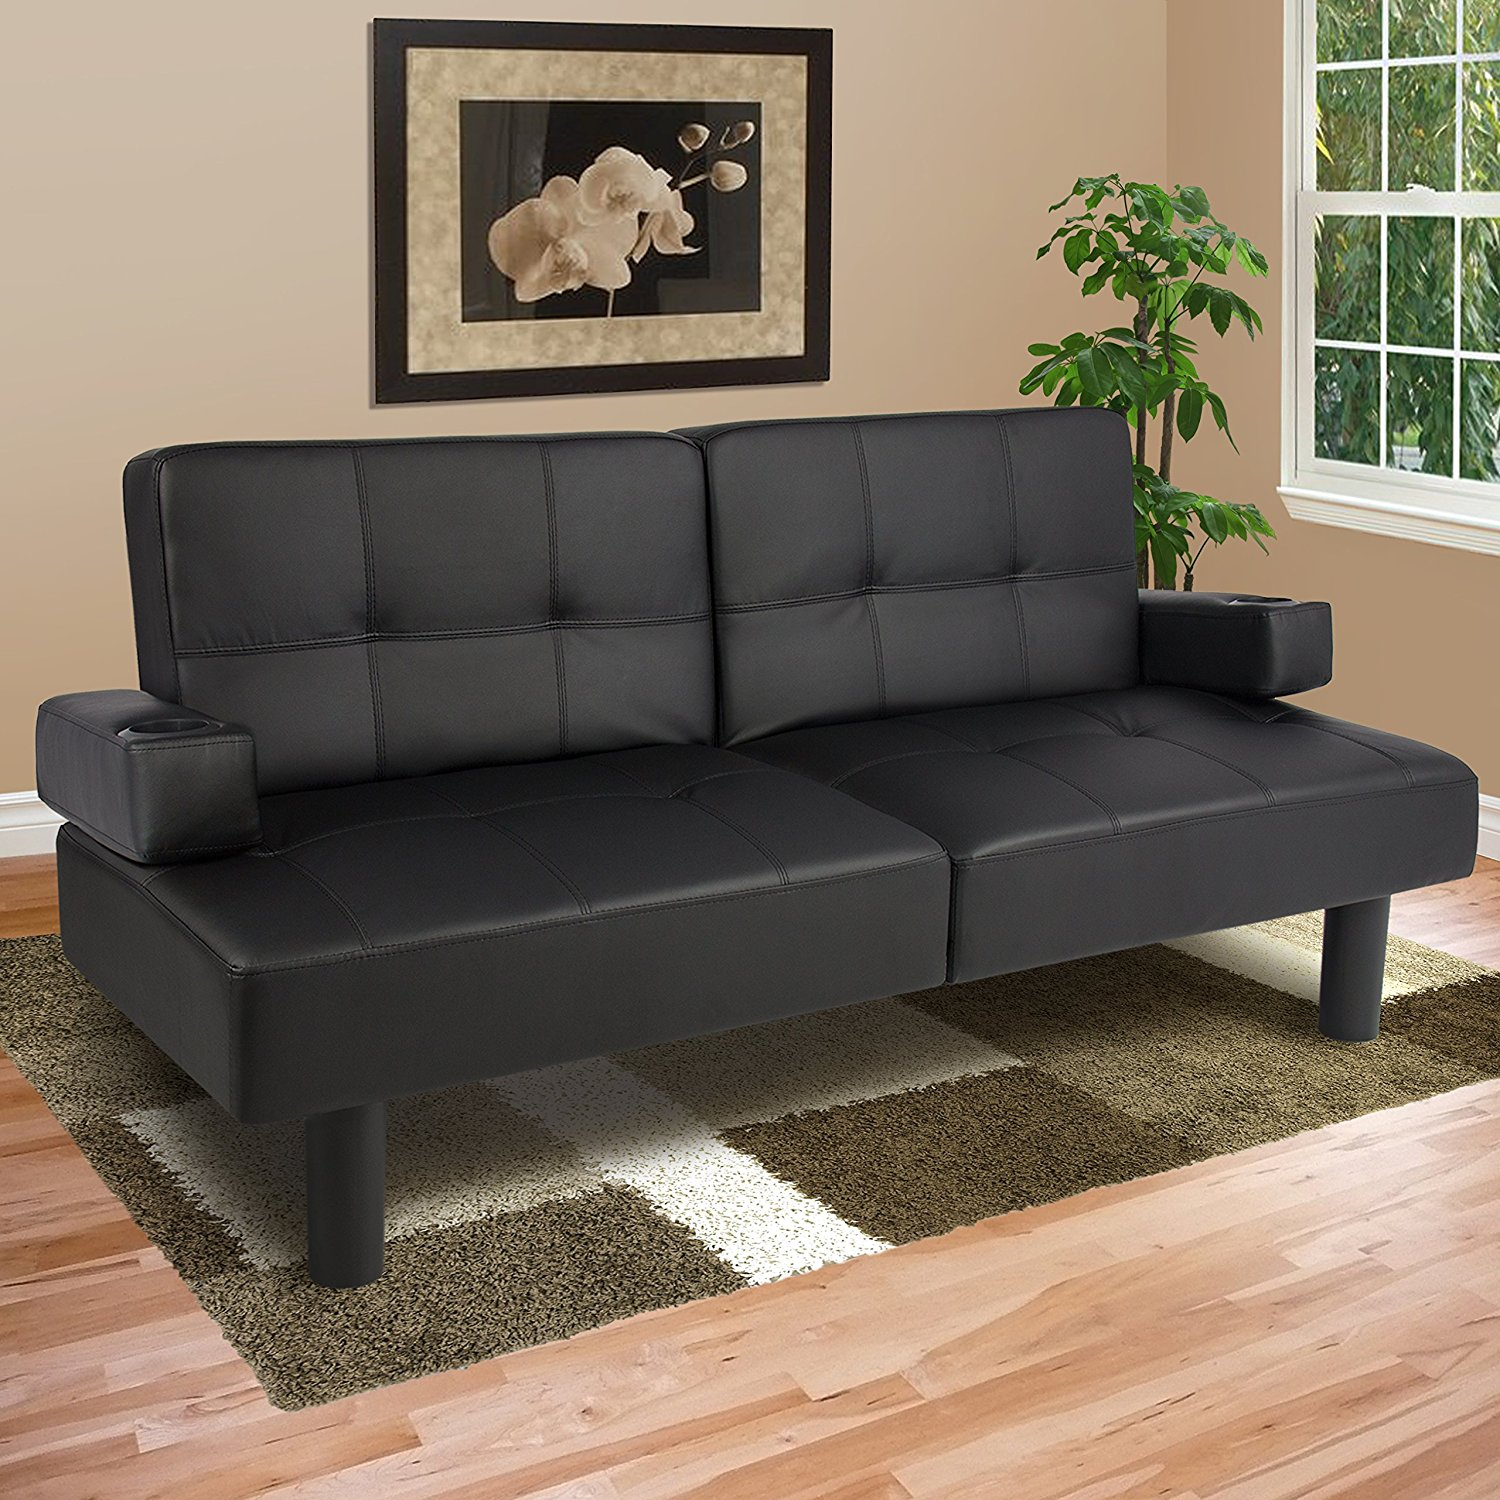 Image of: Modern Queen Size Futon Mattress Ideas